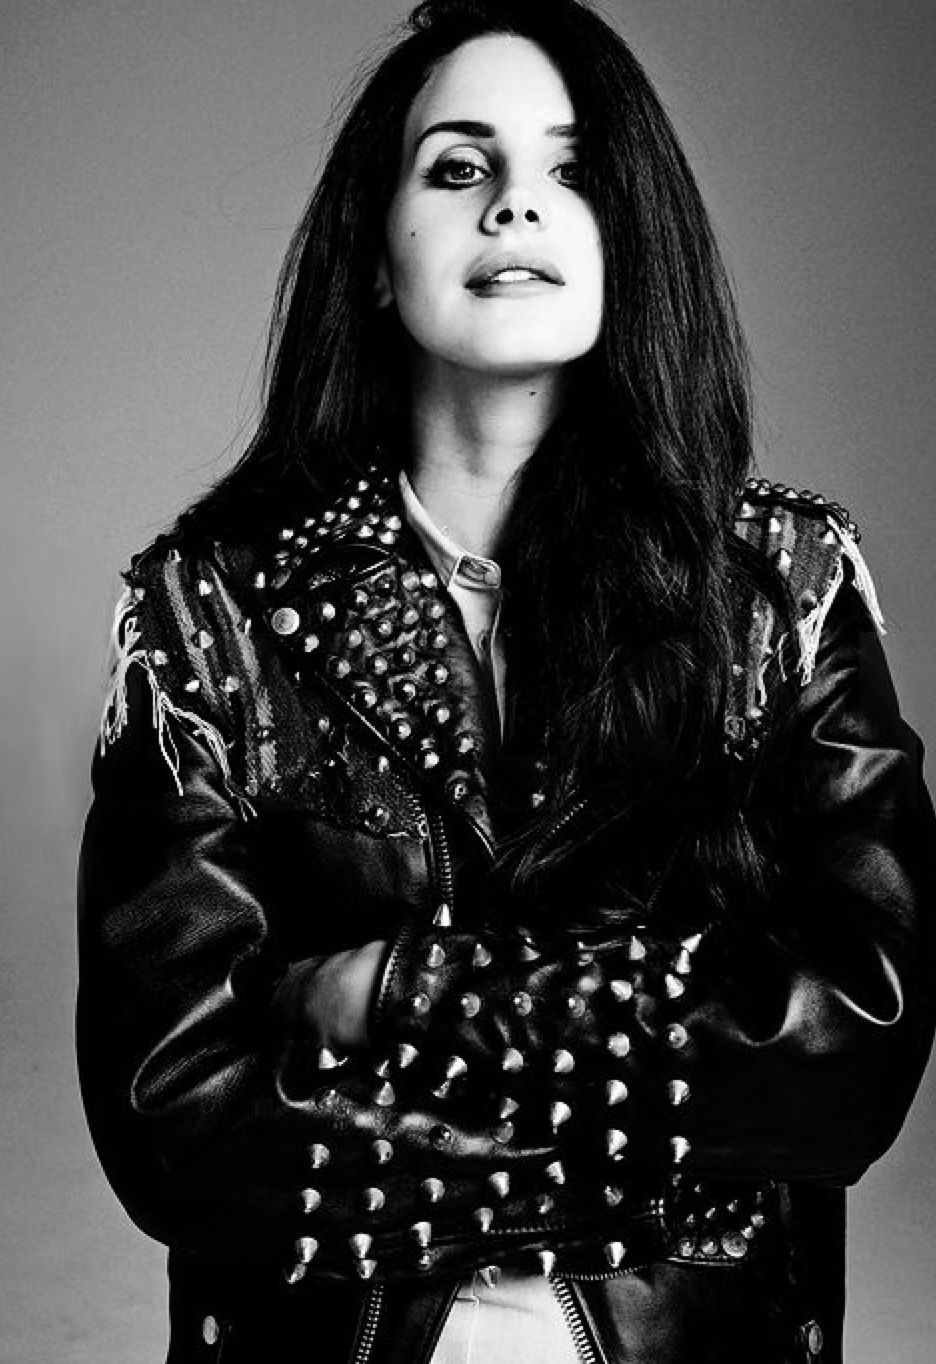 Lana Del Rey Goes Bombshell for Vogue Turkey Feature